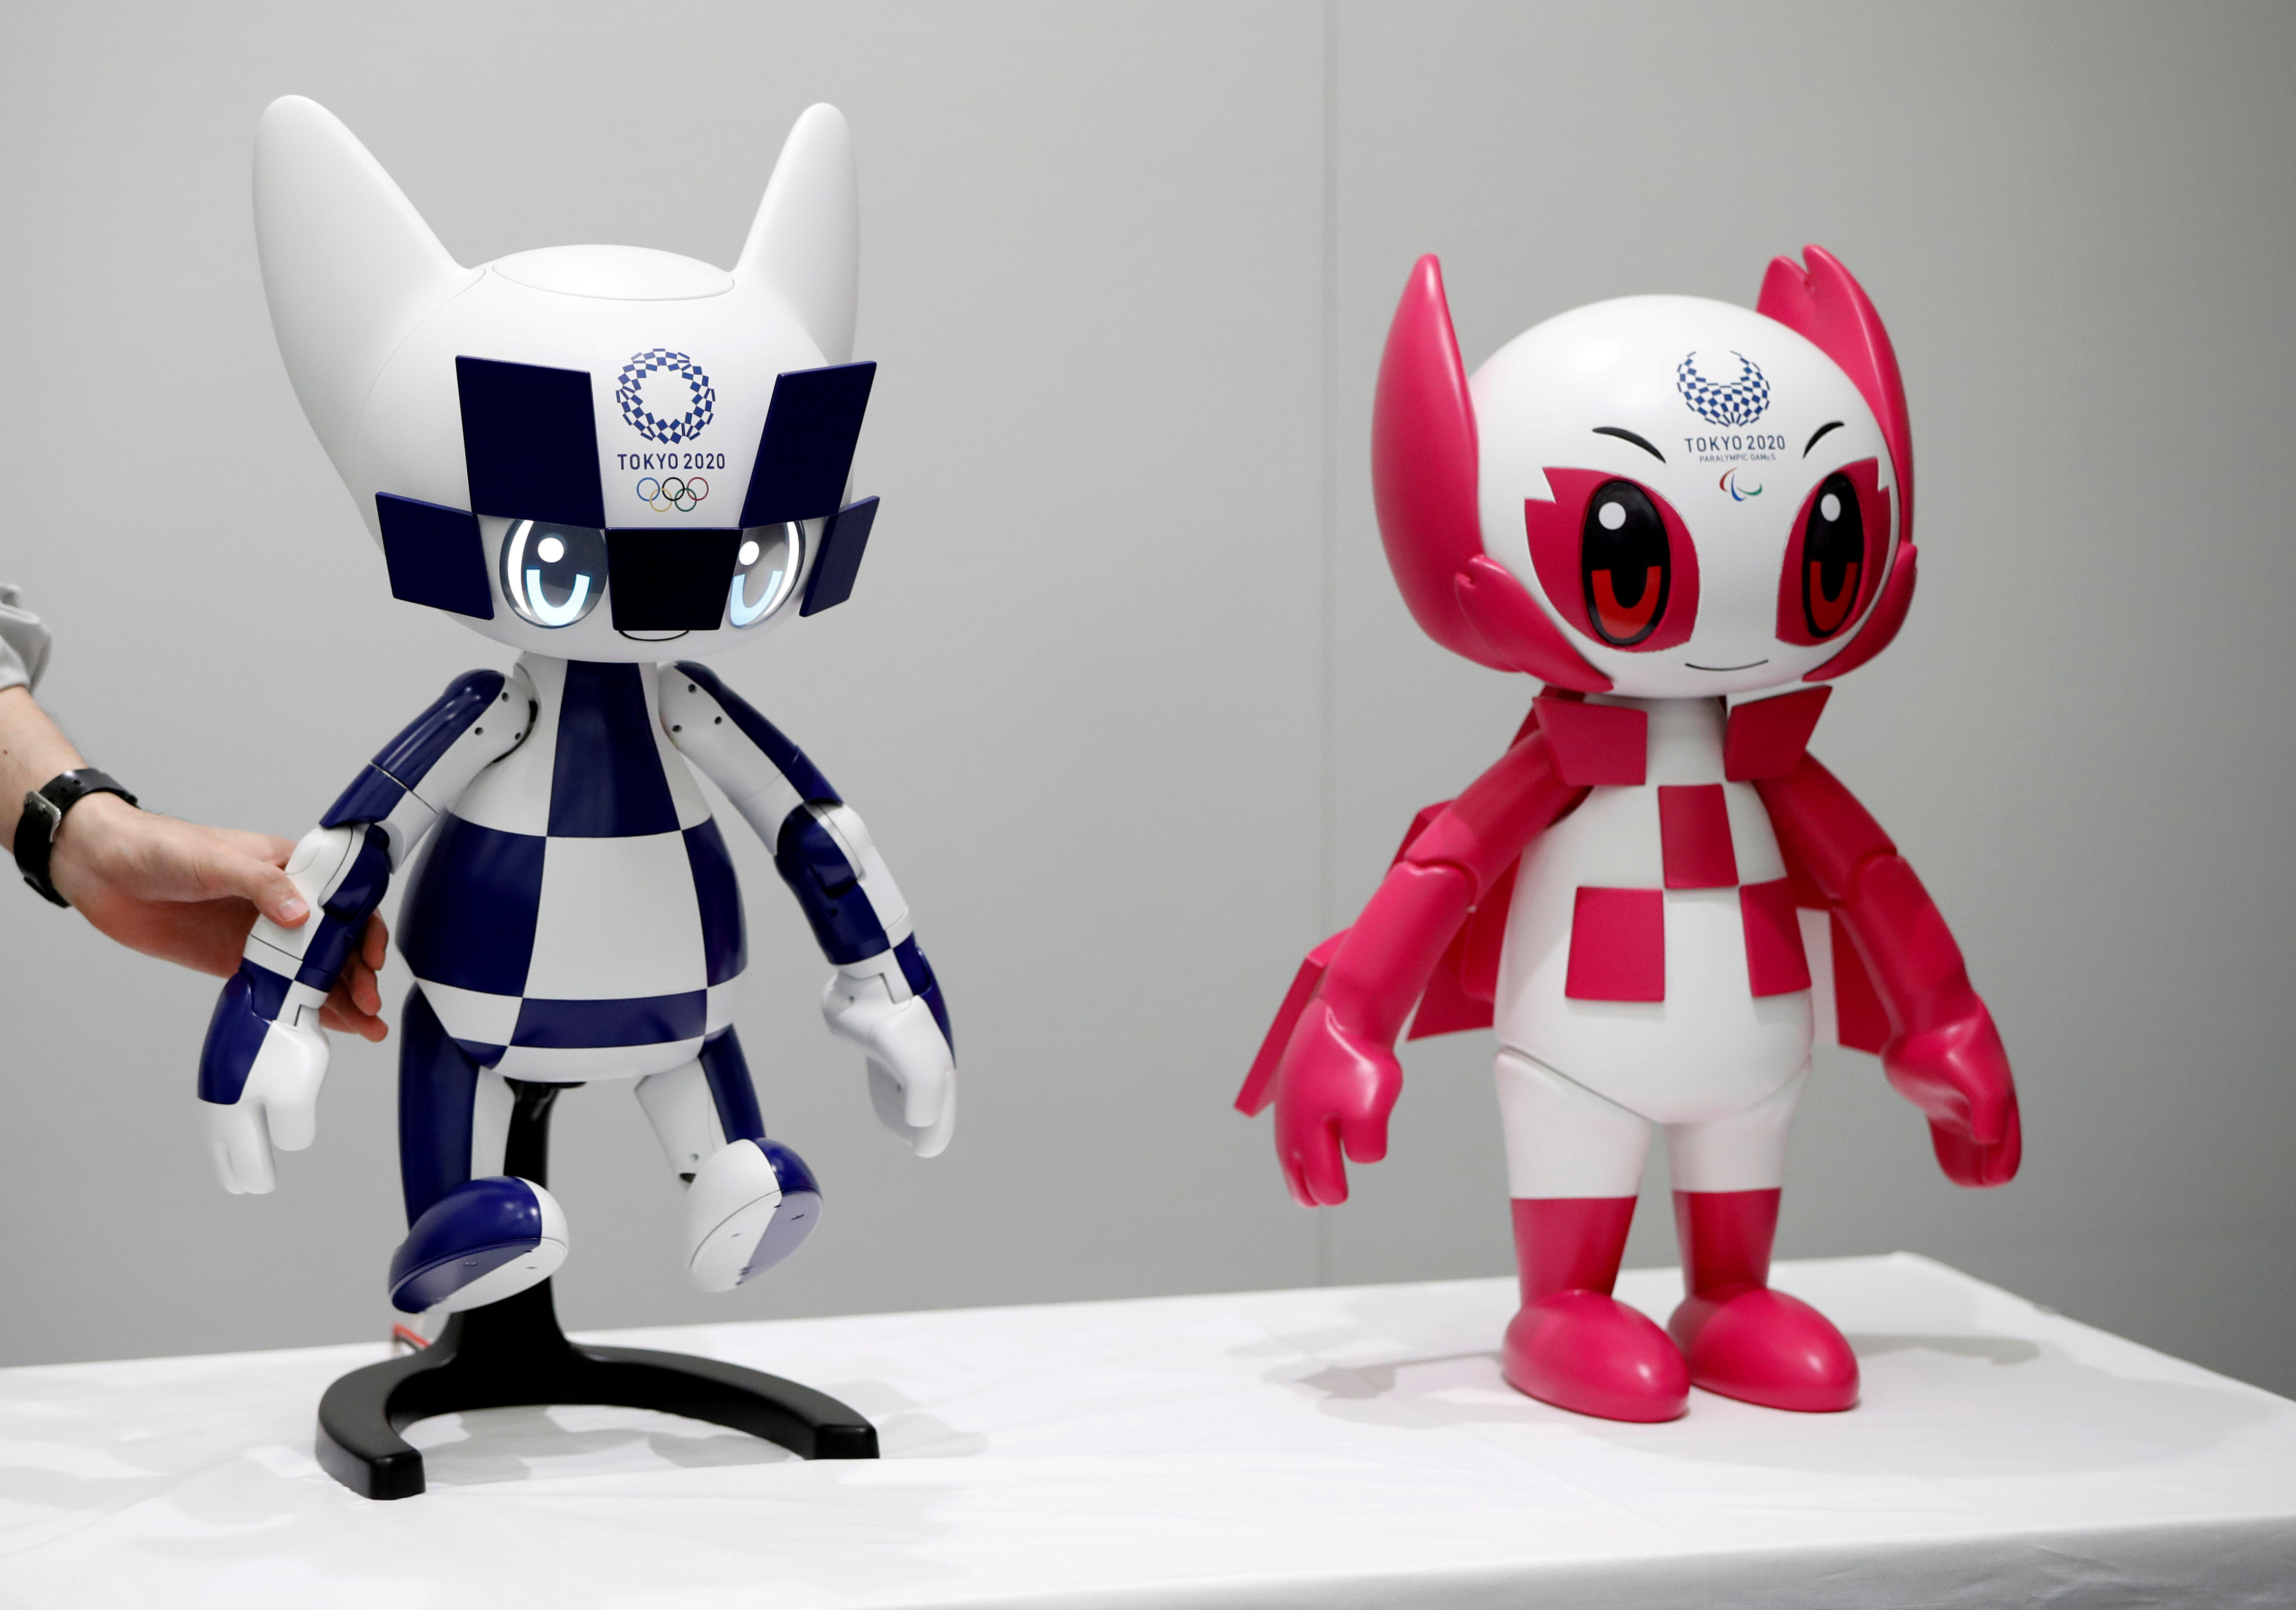 An employee of Toyota Motor Corp. displays Tokyo 2020 mascot robots Miraitowa and Someity which will be used to support the Tokyo 2020 Olympic and Paralympic Games, during a press preview in Tokyo, Japan July 18, 2019. Picture taken July 18, 2019.  REUTERS/Issei Kato - RC1738A83700